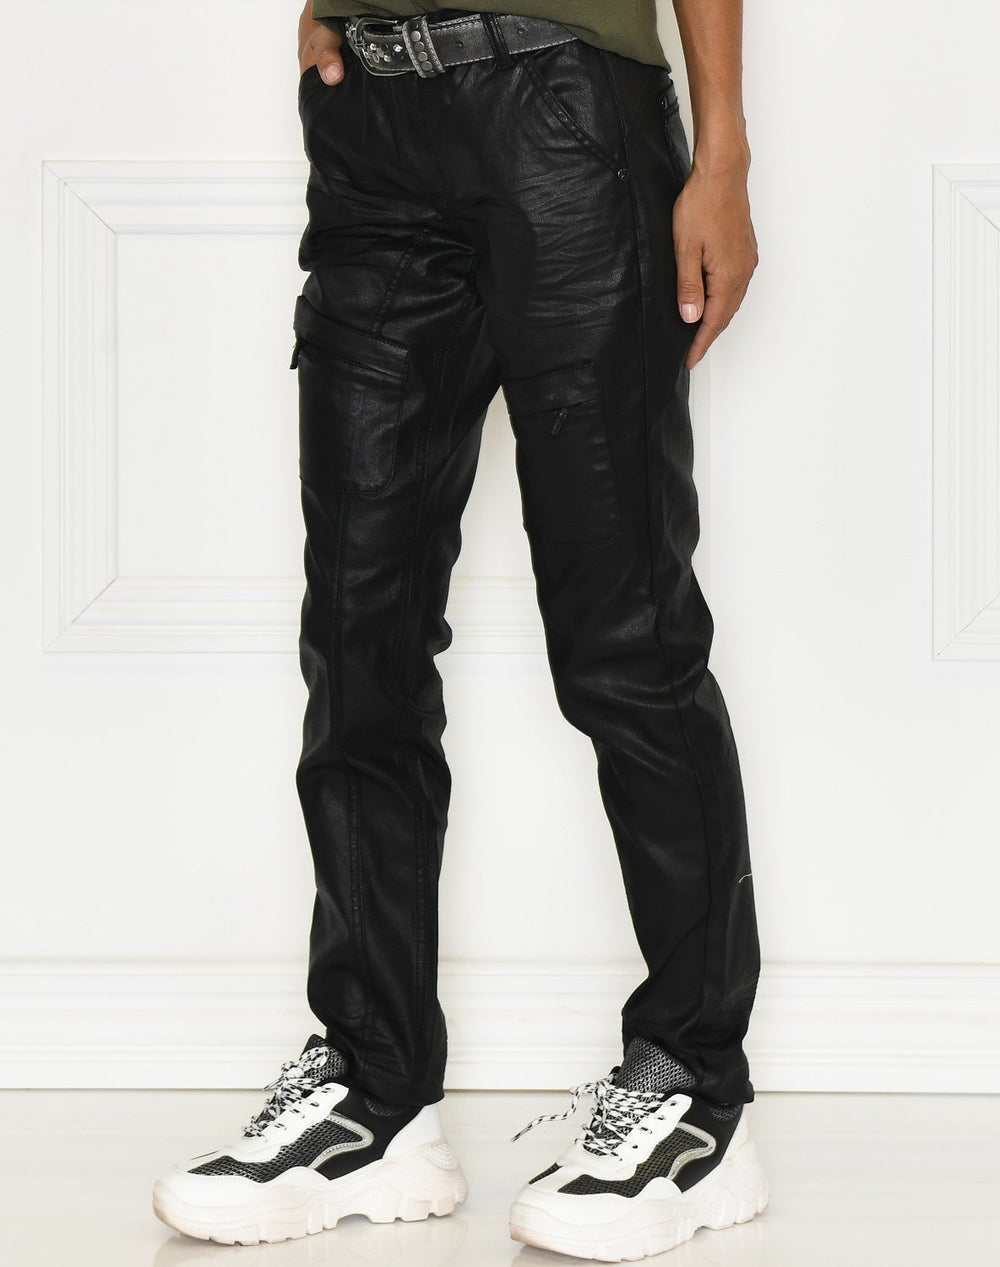 Culture CUassika pants malou fit black - Online-Mode